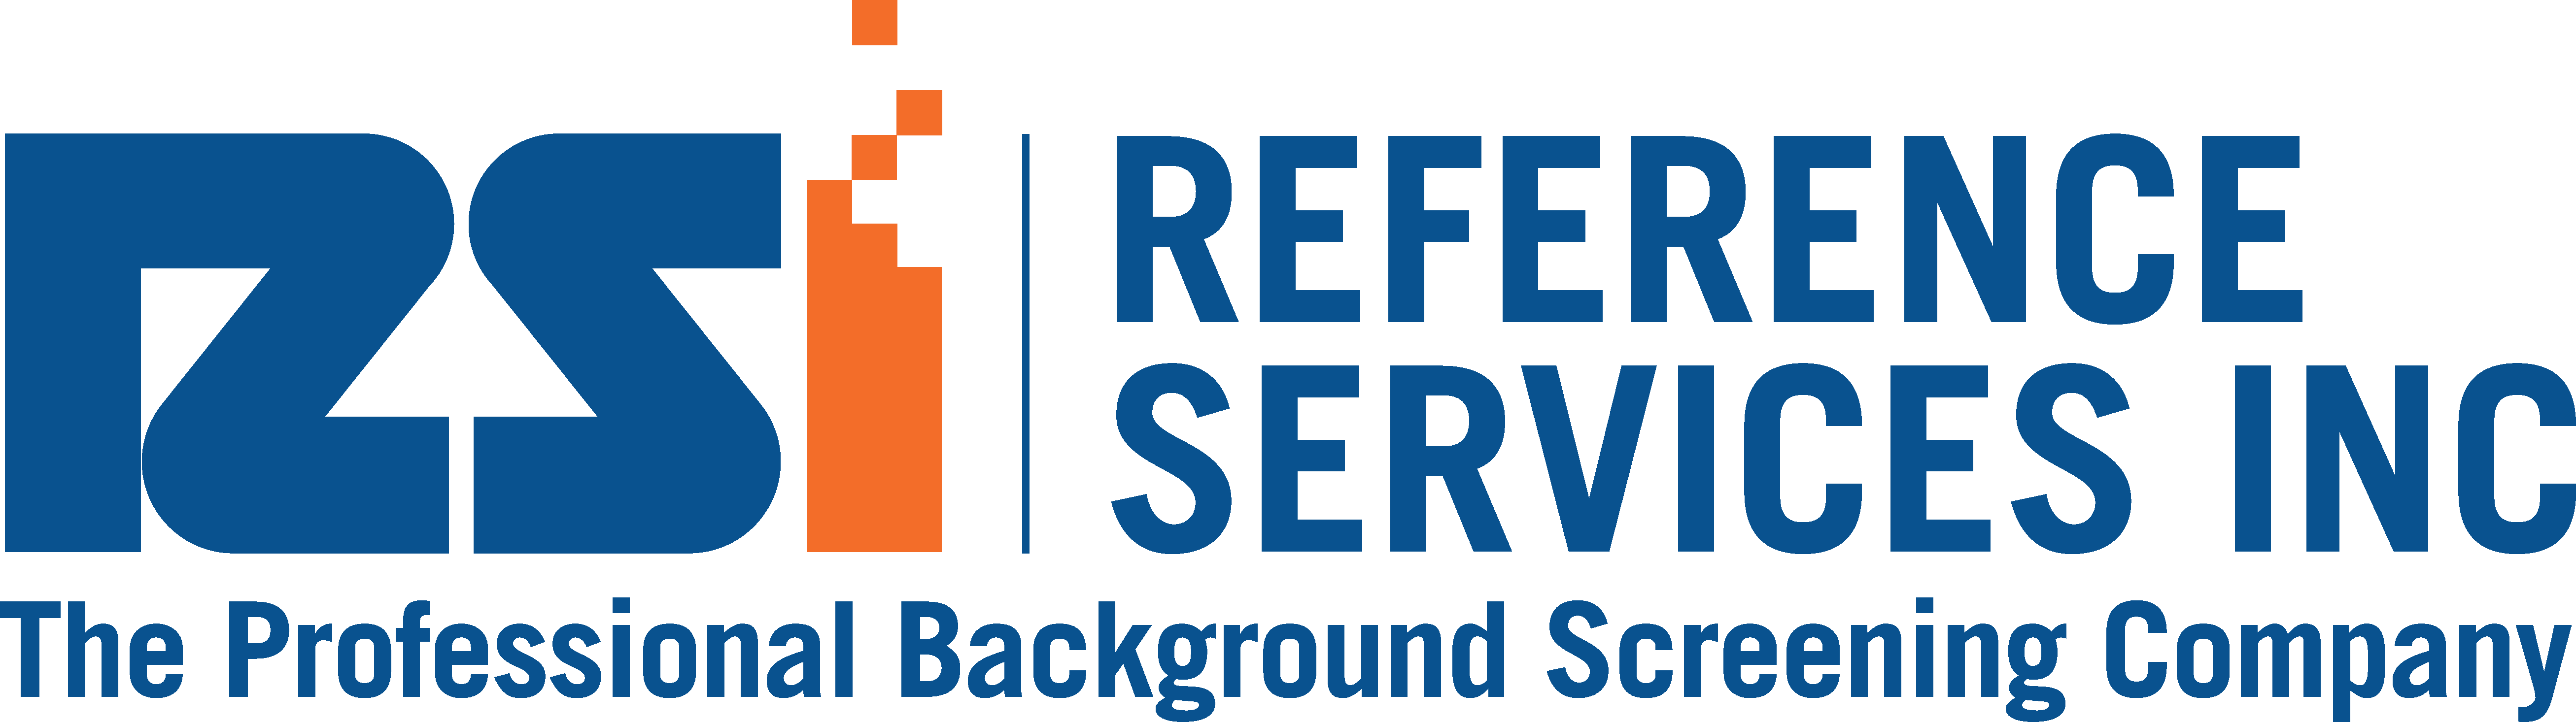 reference services logo